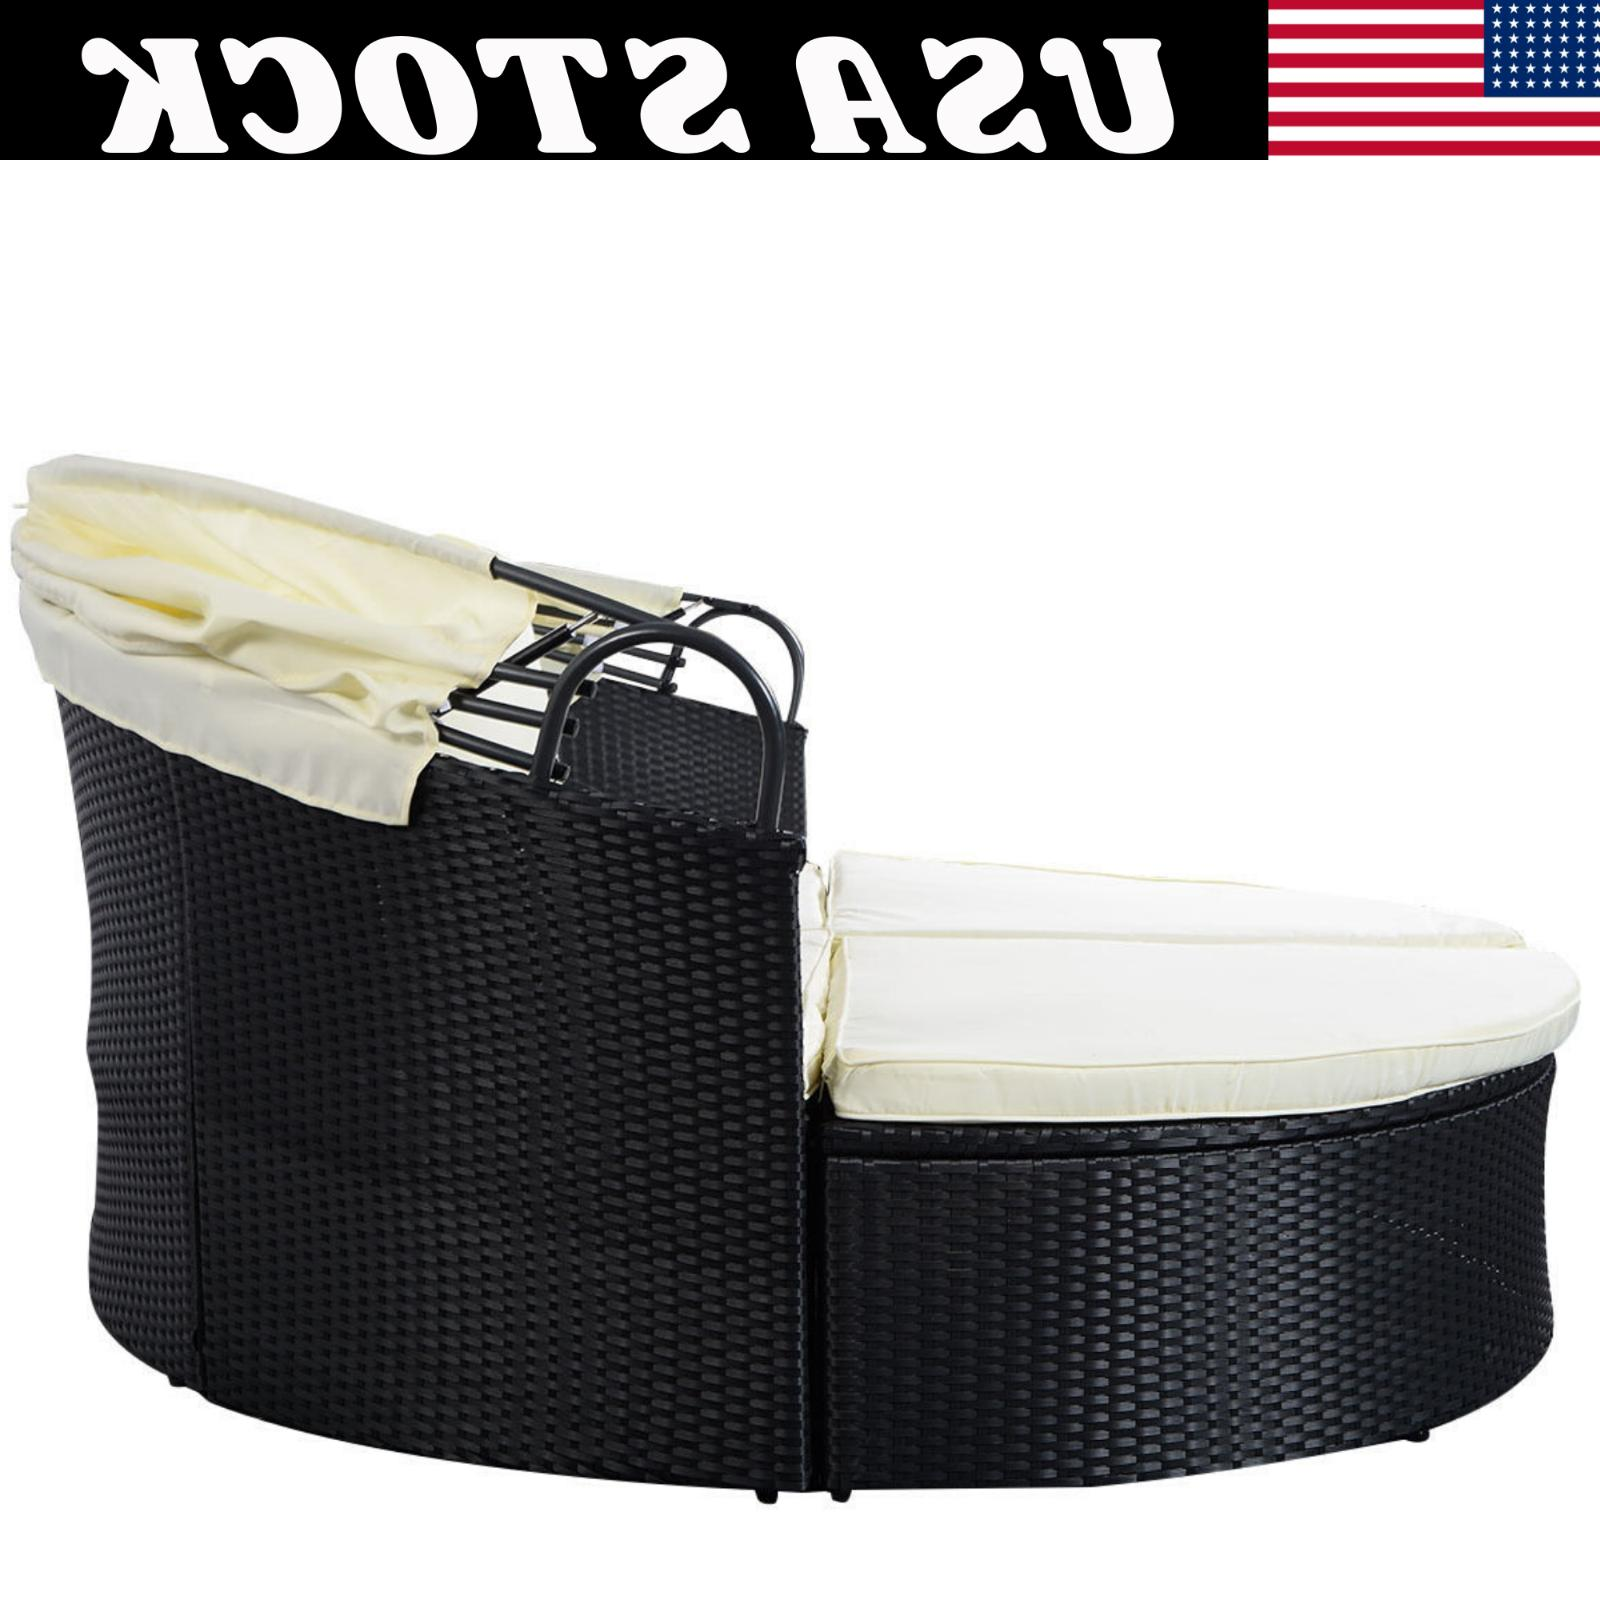 Outdoor Patio Sofa Furniture Round Daybed